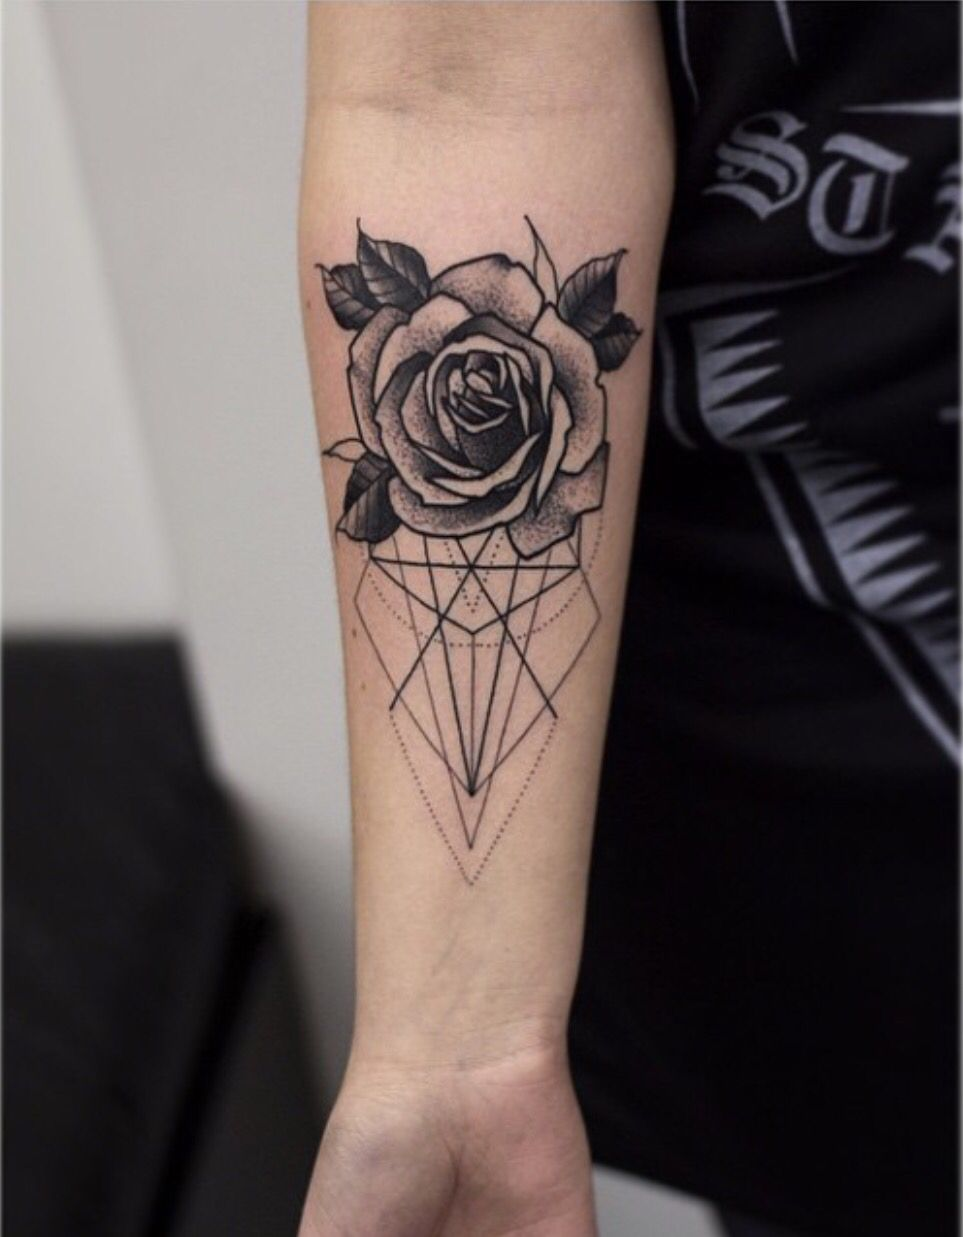 I want to make a tattoo, but they say that tattoos affect the fate of a person. What kind of tattoo is better to choose 57